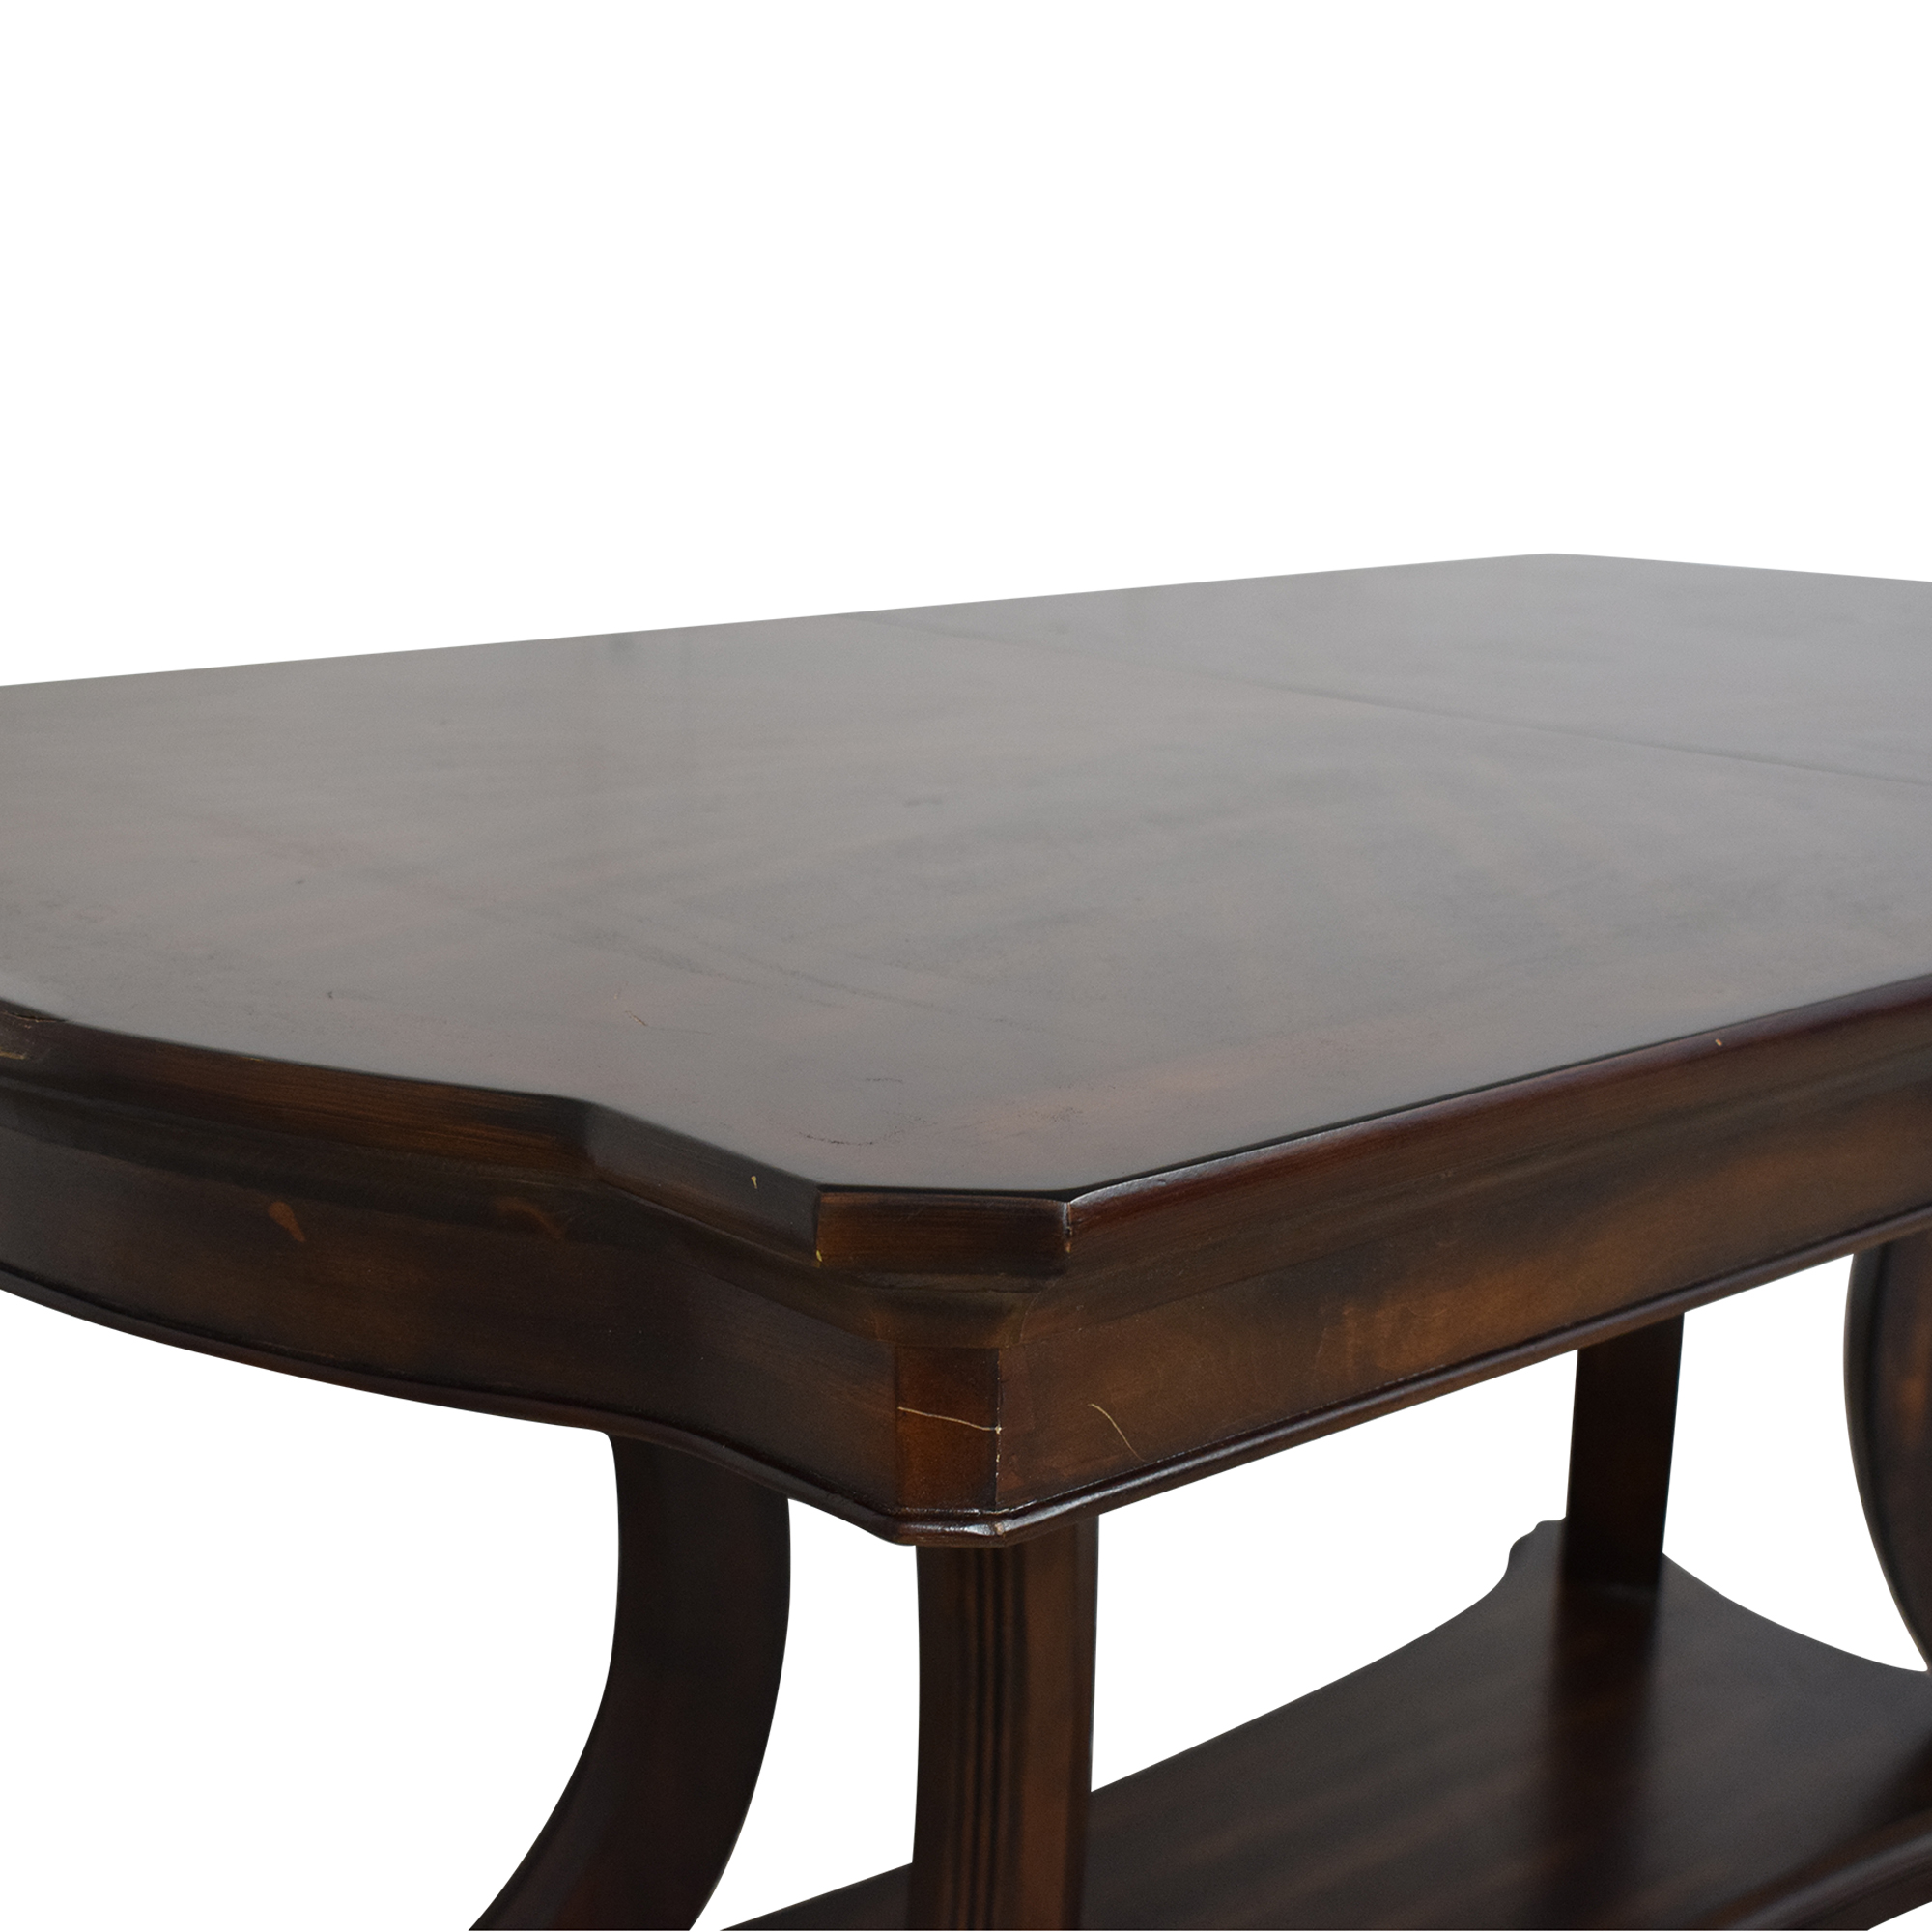 Pedestal Base Extendable Dining Table dimensions